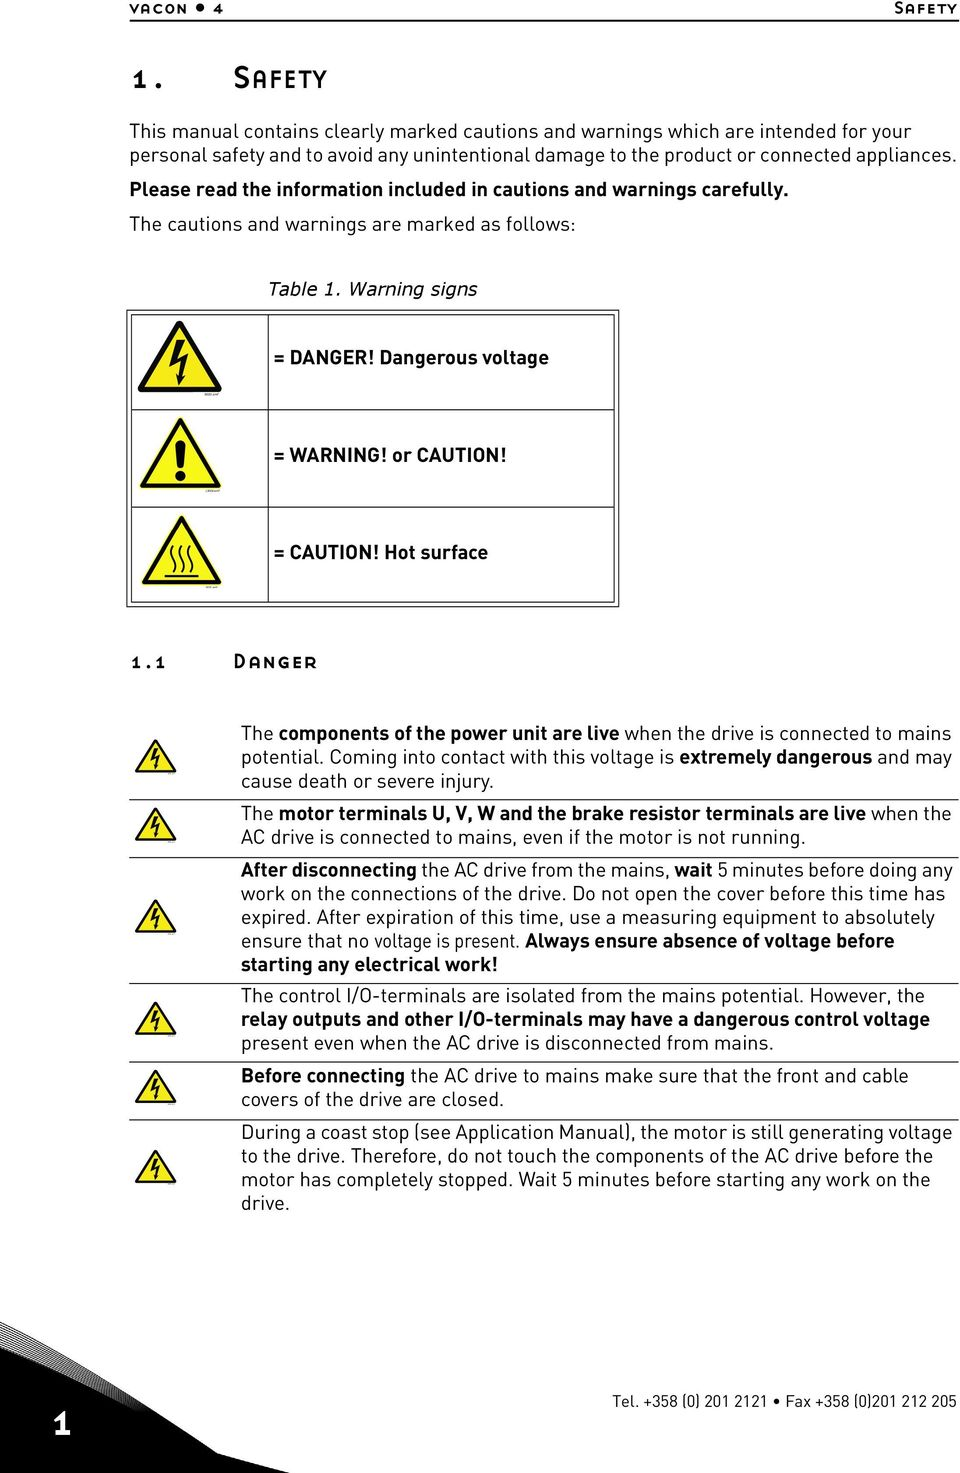 Please read the information included in cautions and warnings carefully. The cautions and warnings are marked as follows: Table 1. Warning signs = DANGER! Dangerous voltage = WARNING! or CAUTION!